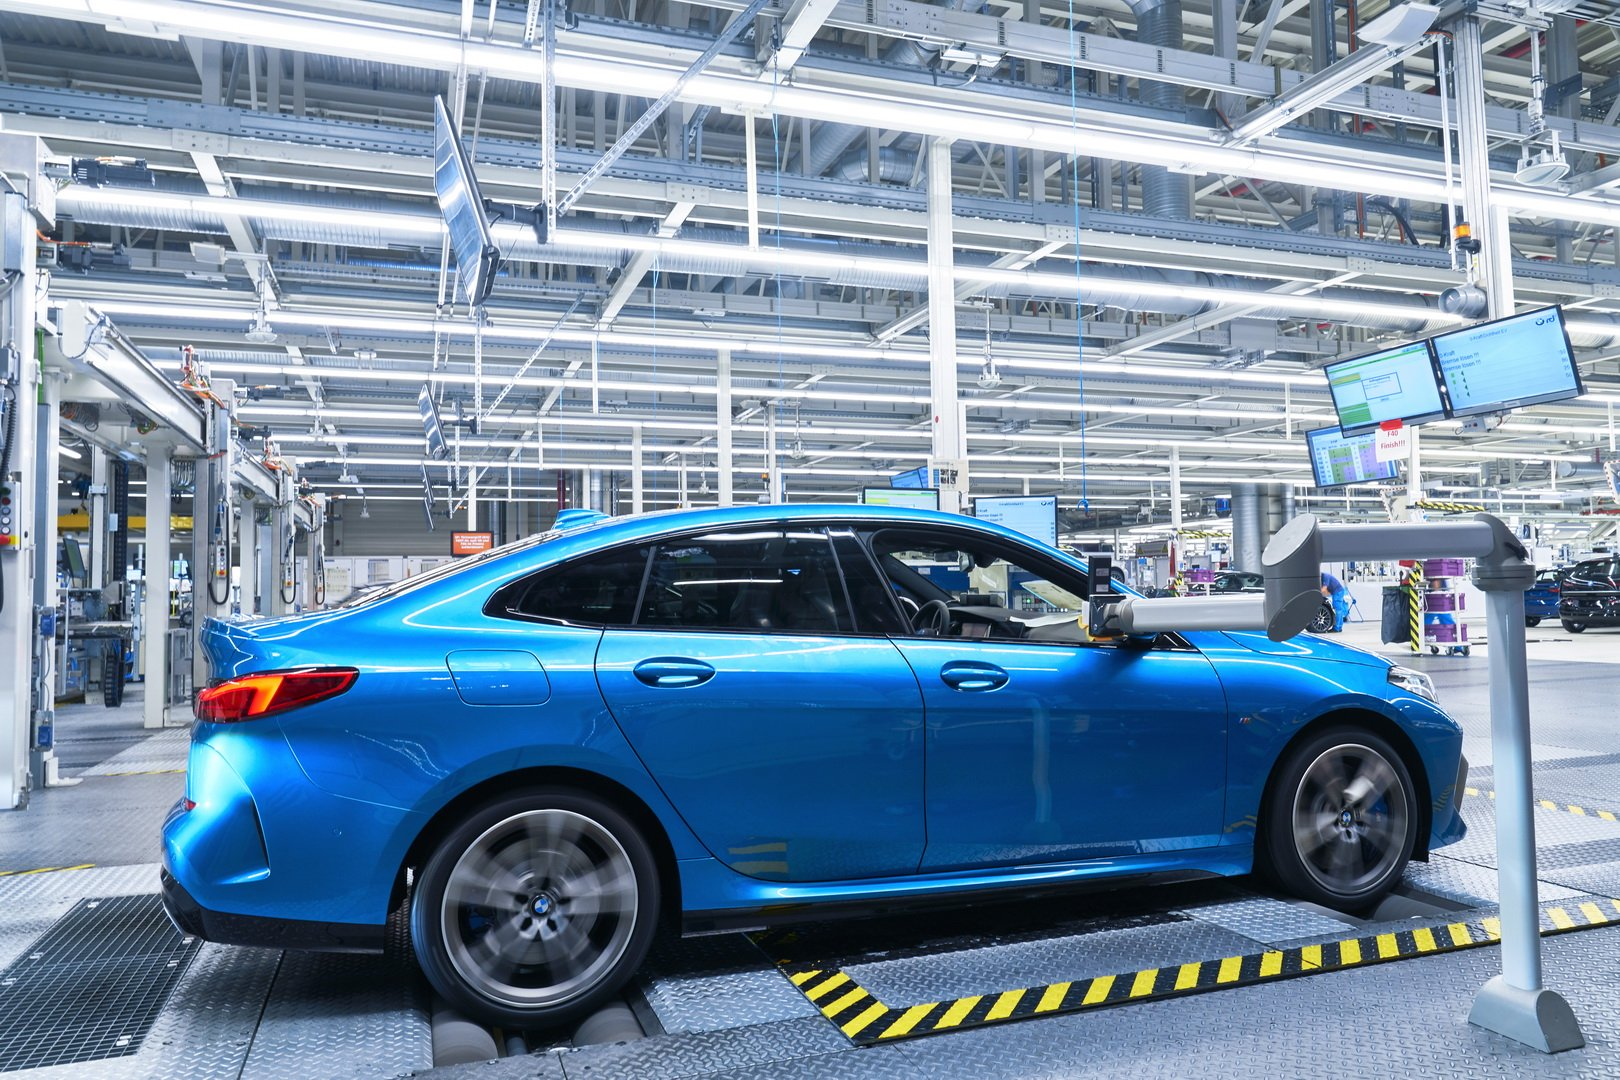 2020-bmw-2-series-gran-coupe-production-leipzig-15